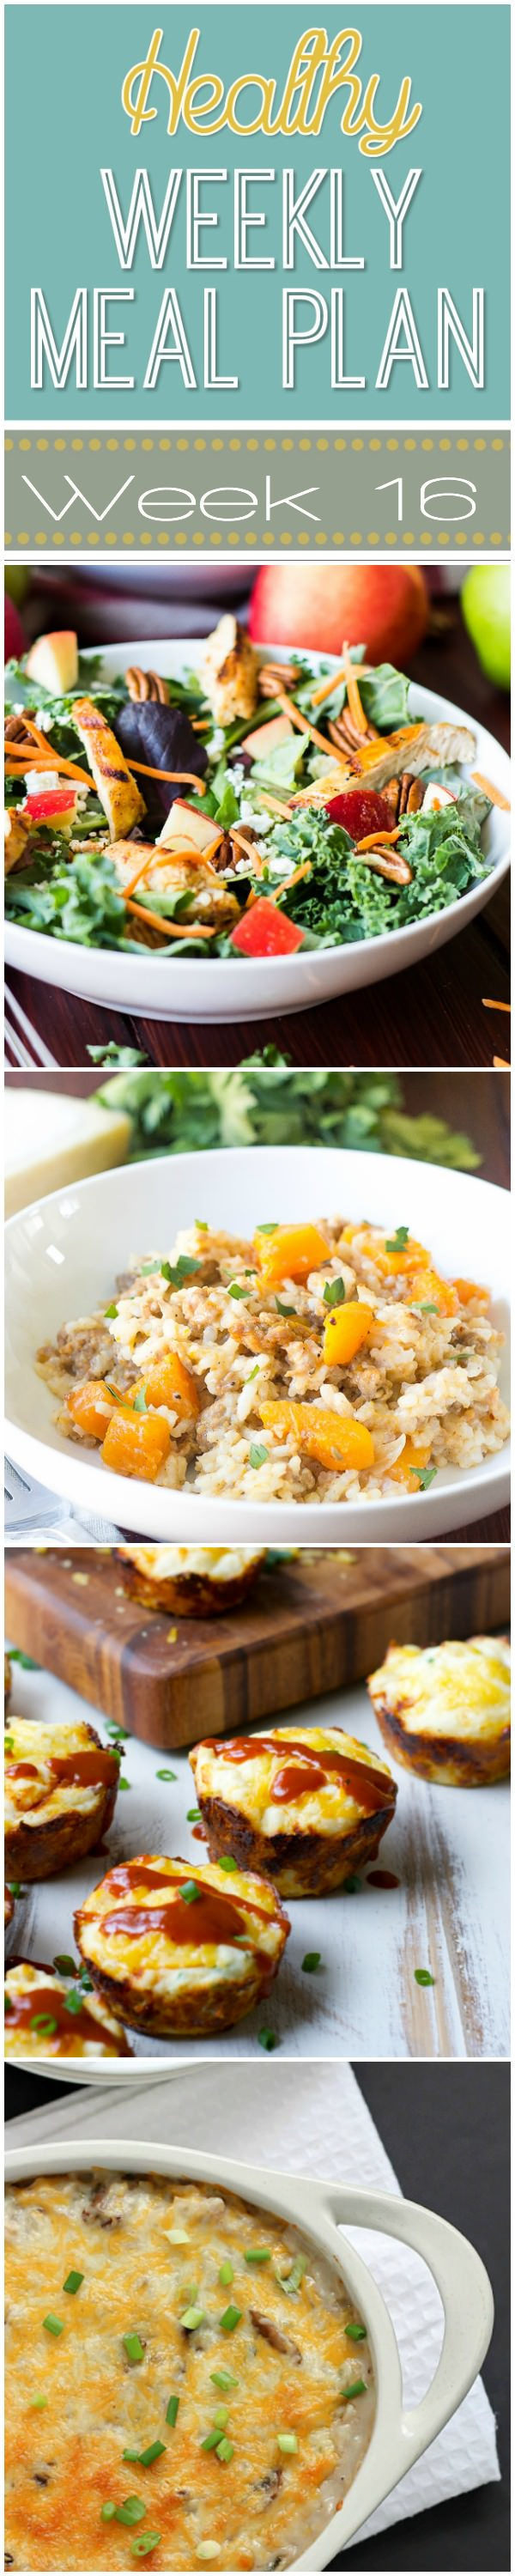 Healthy Meal Plan Week is filled with wholesome dinners, such as Crock Pot Black Bean Soup, pumpkin snacks, and a fall inspired breakfast to enjoy!